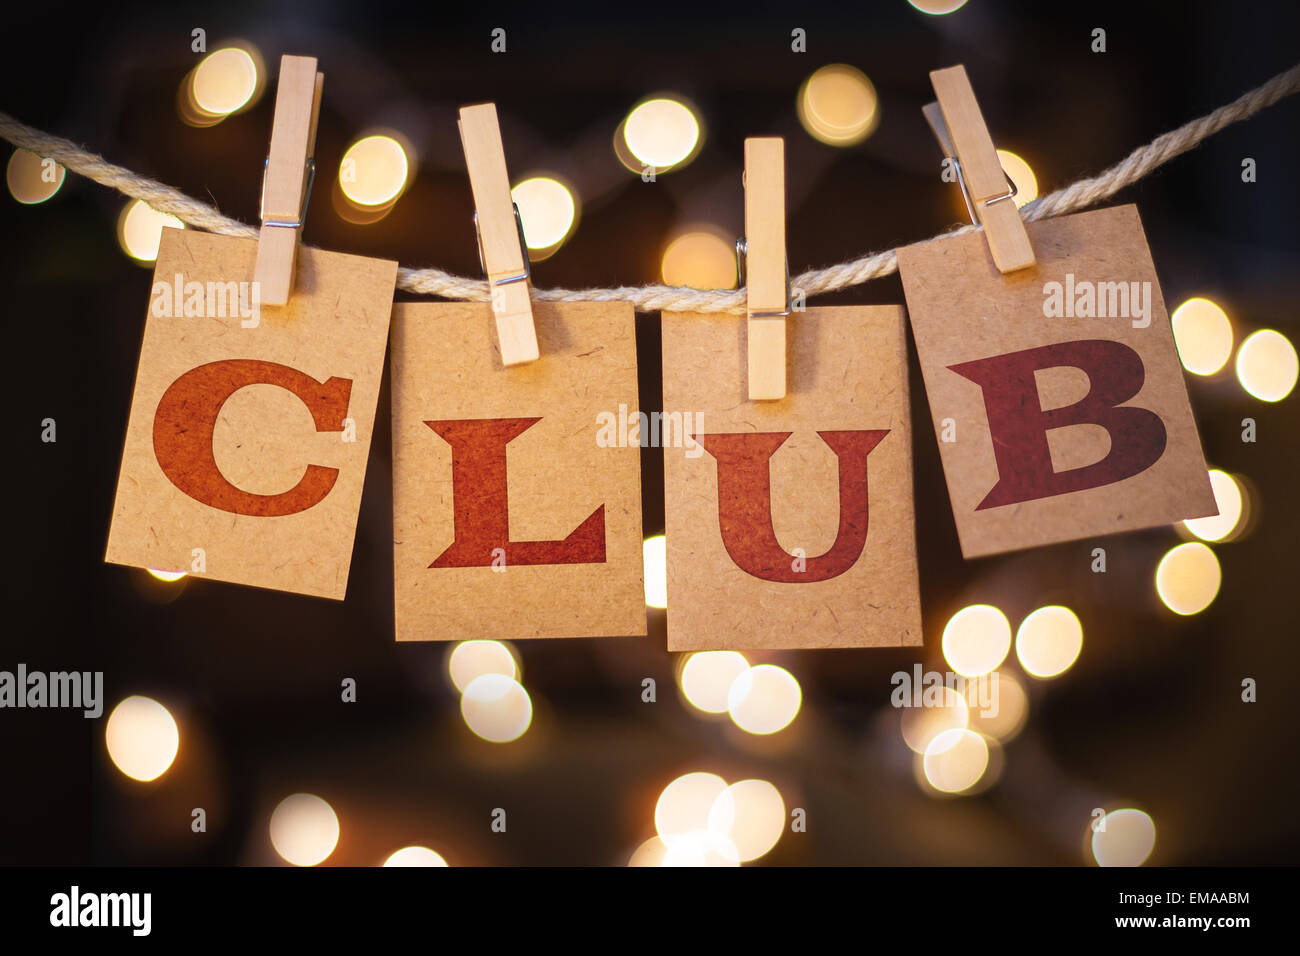 Image result for club word